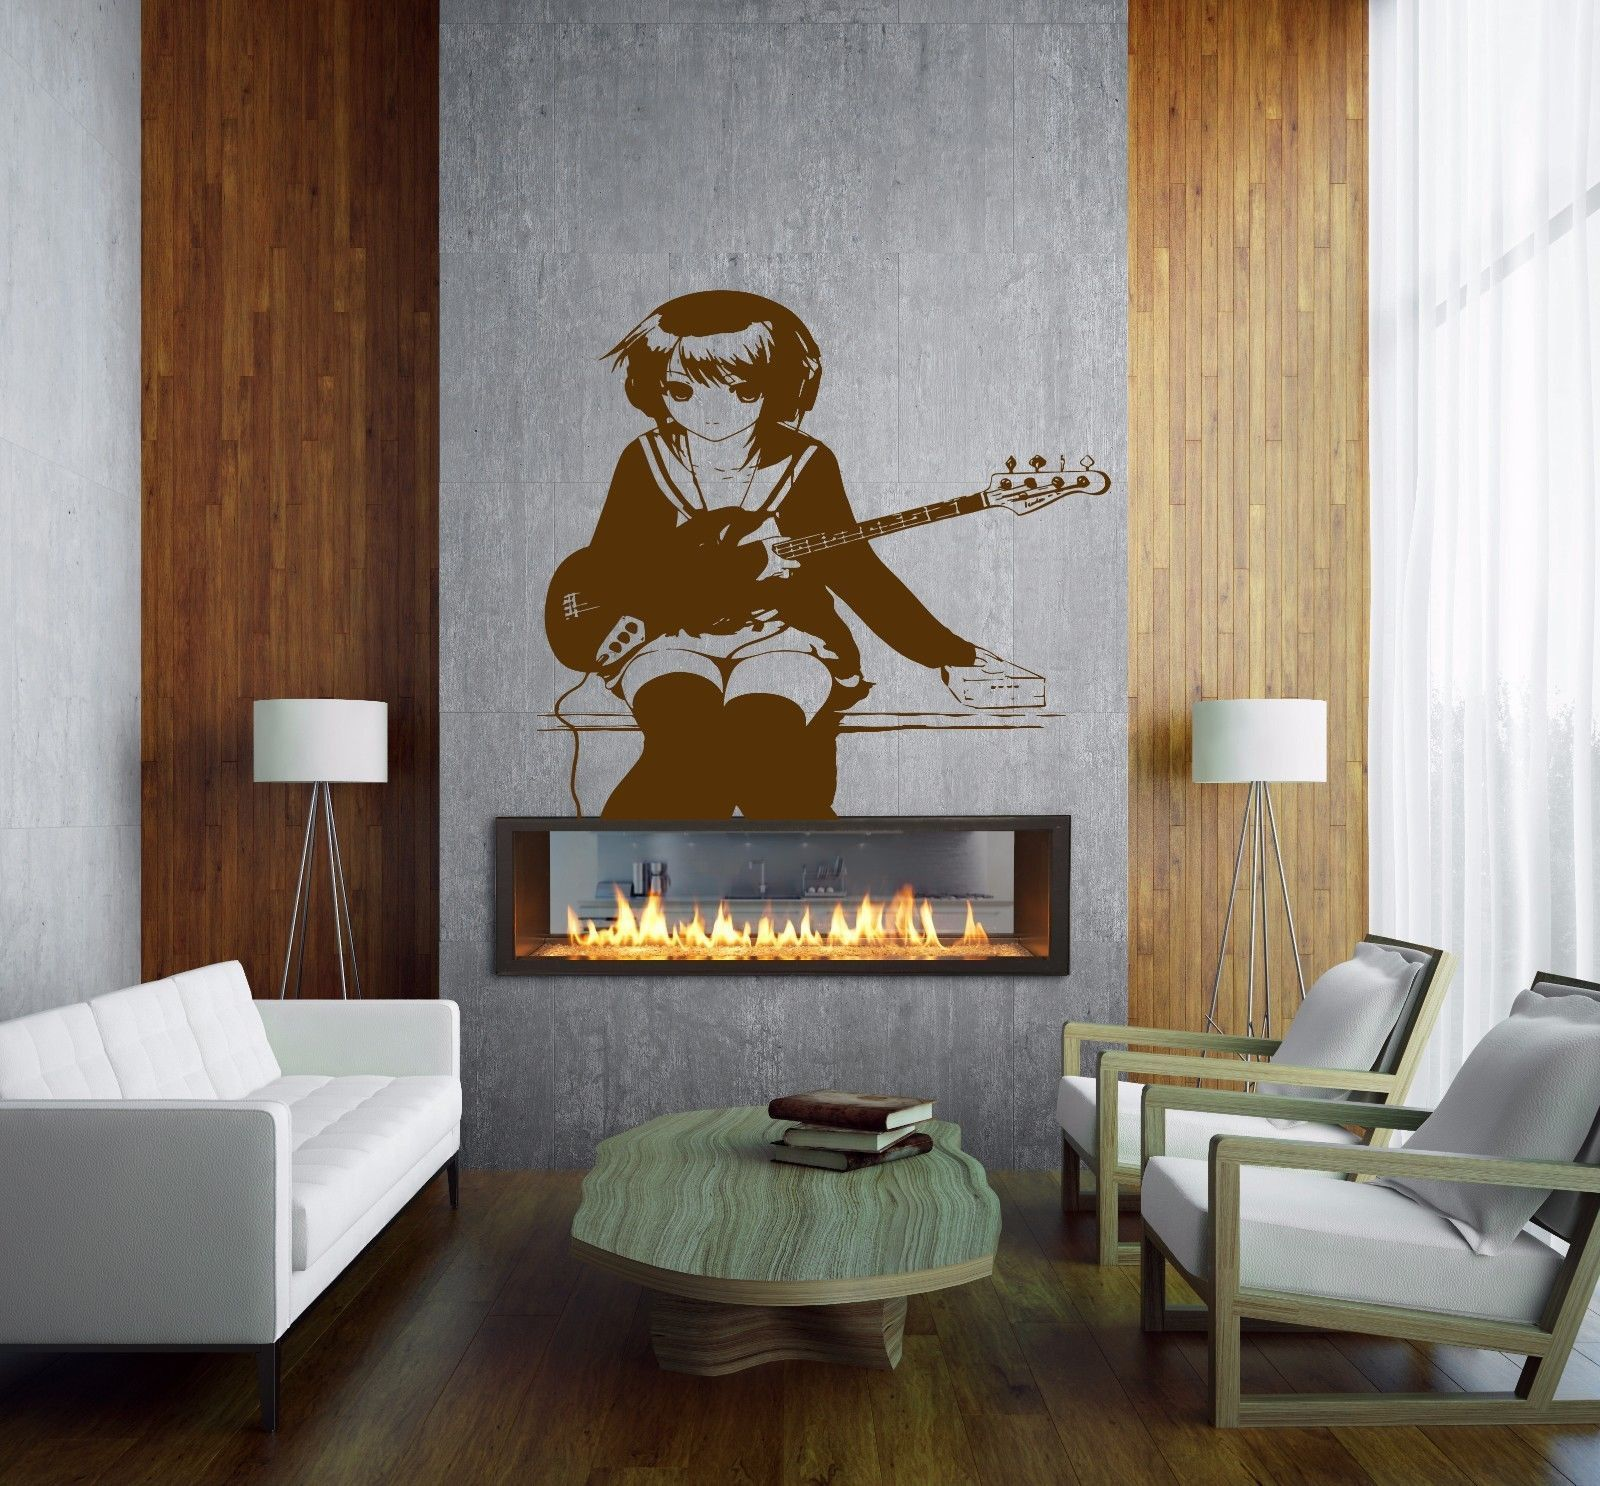 Anime Decal Girl With Guitar Kids Room Children Stylish Wall